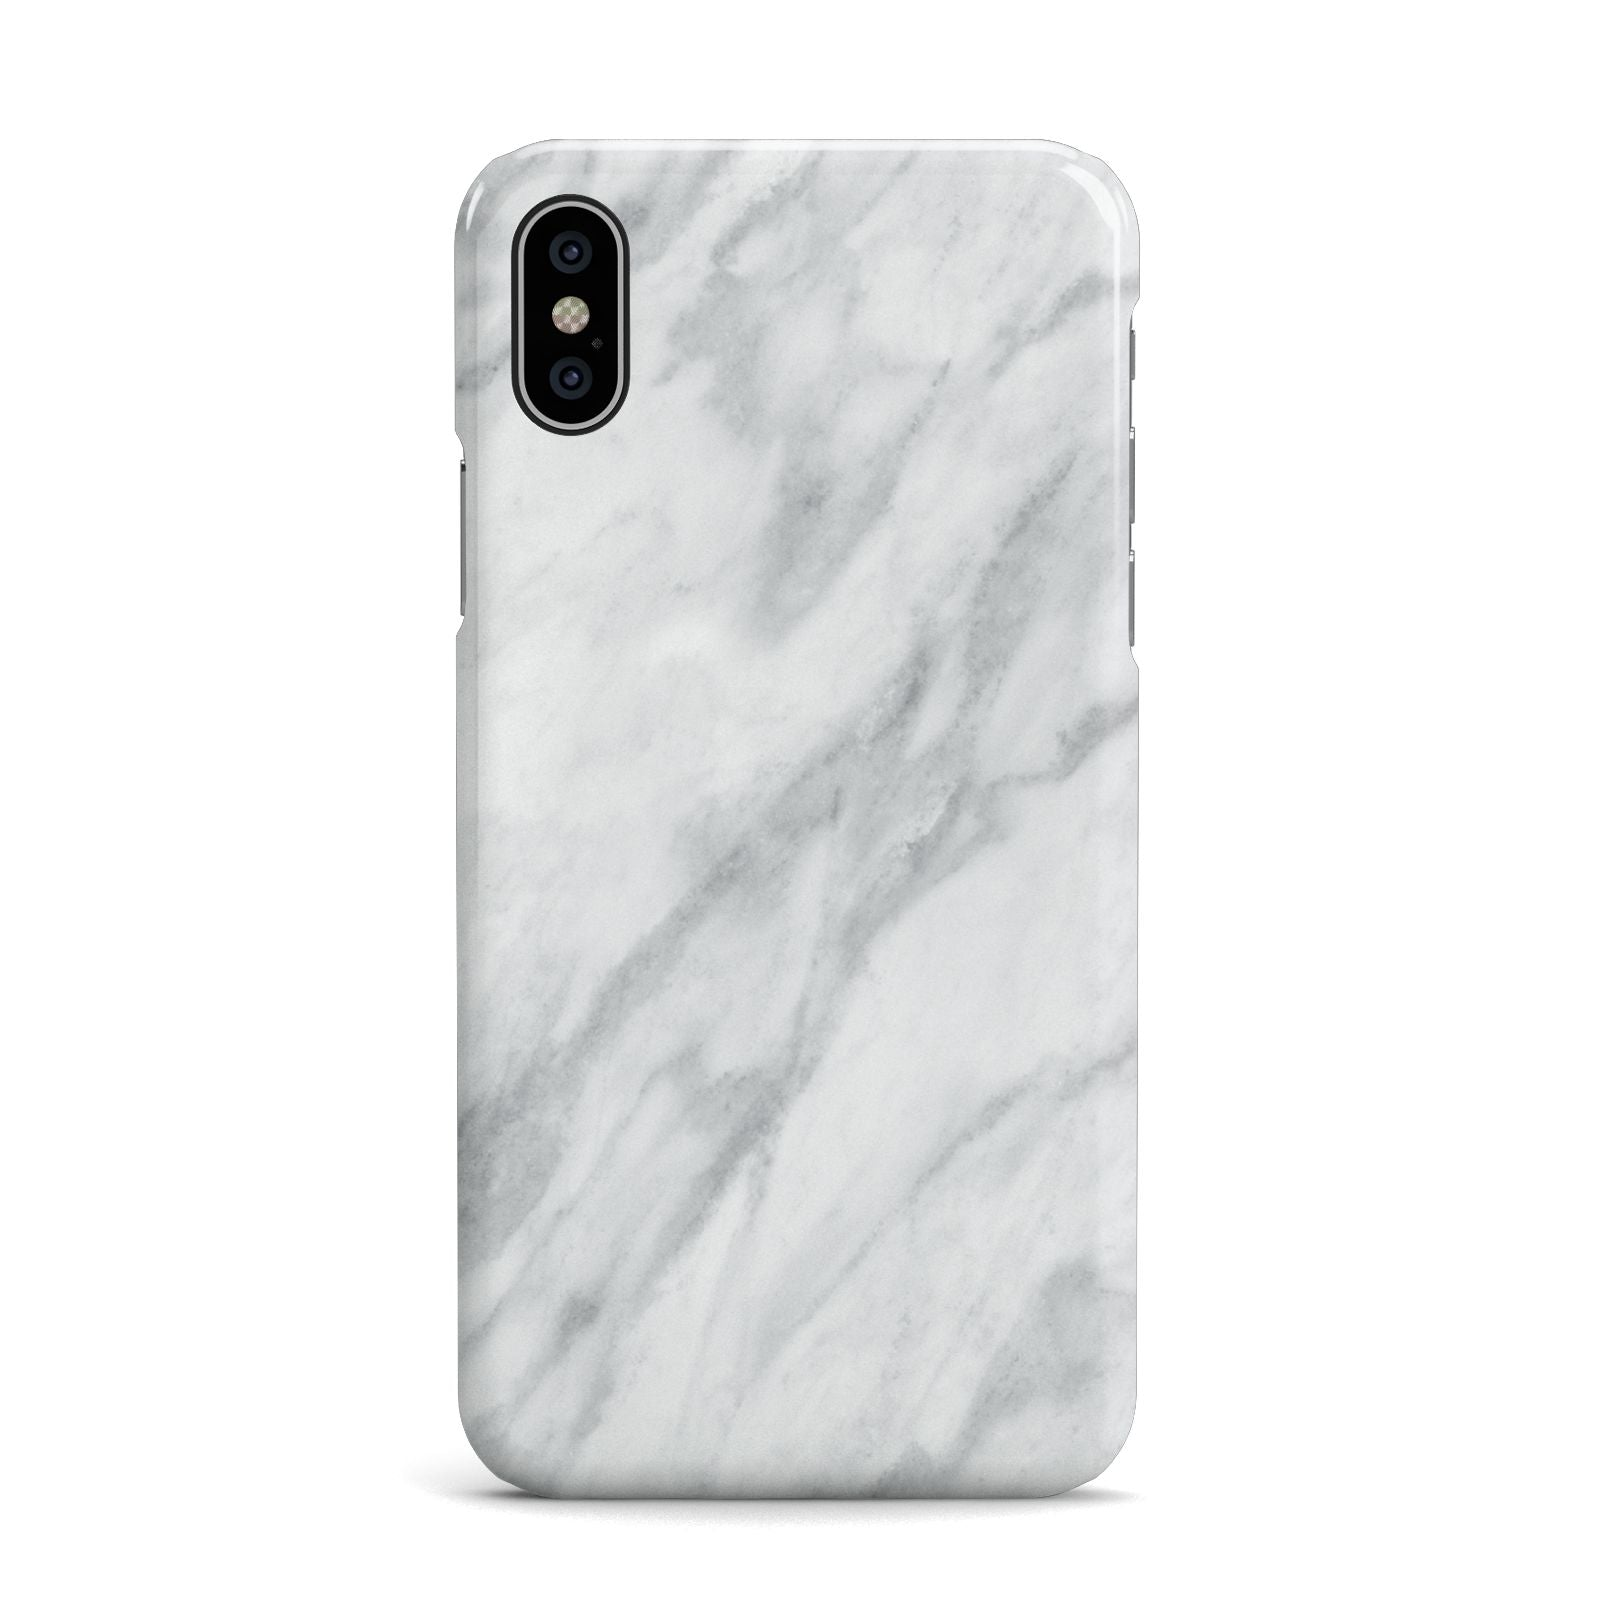 Faux Marble Effect Italian Apple iPhone X Case